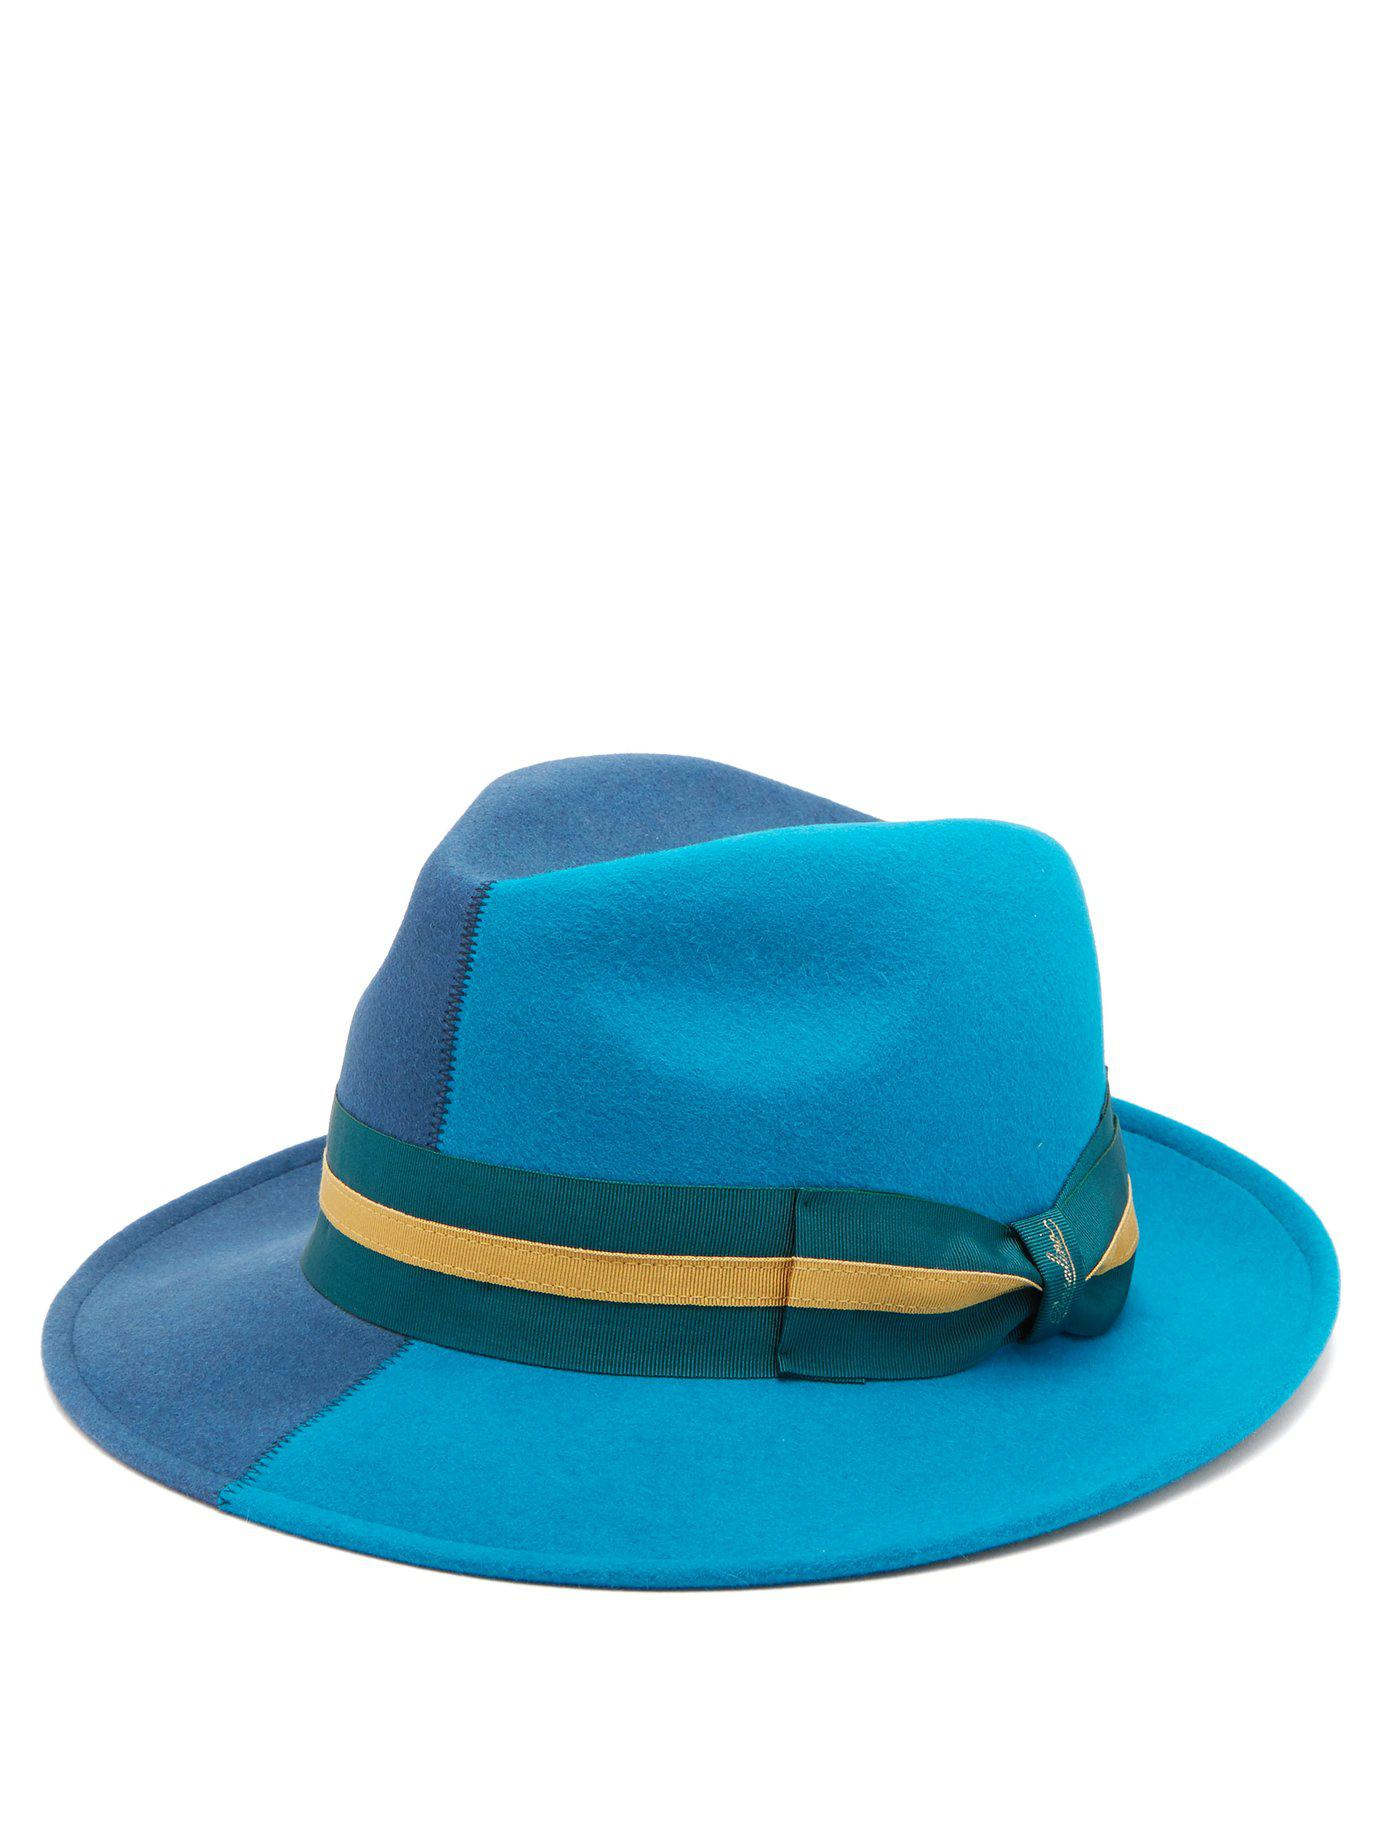 Think, borsalino fur felt blue striped band